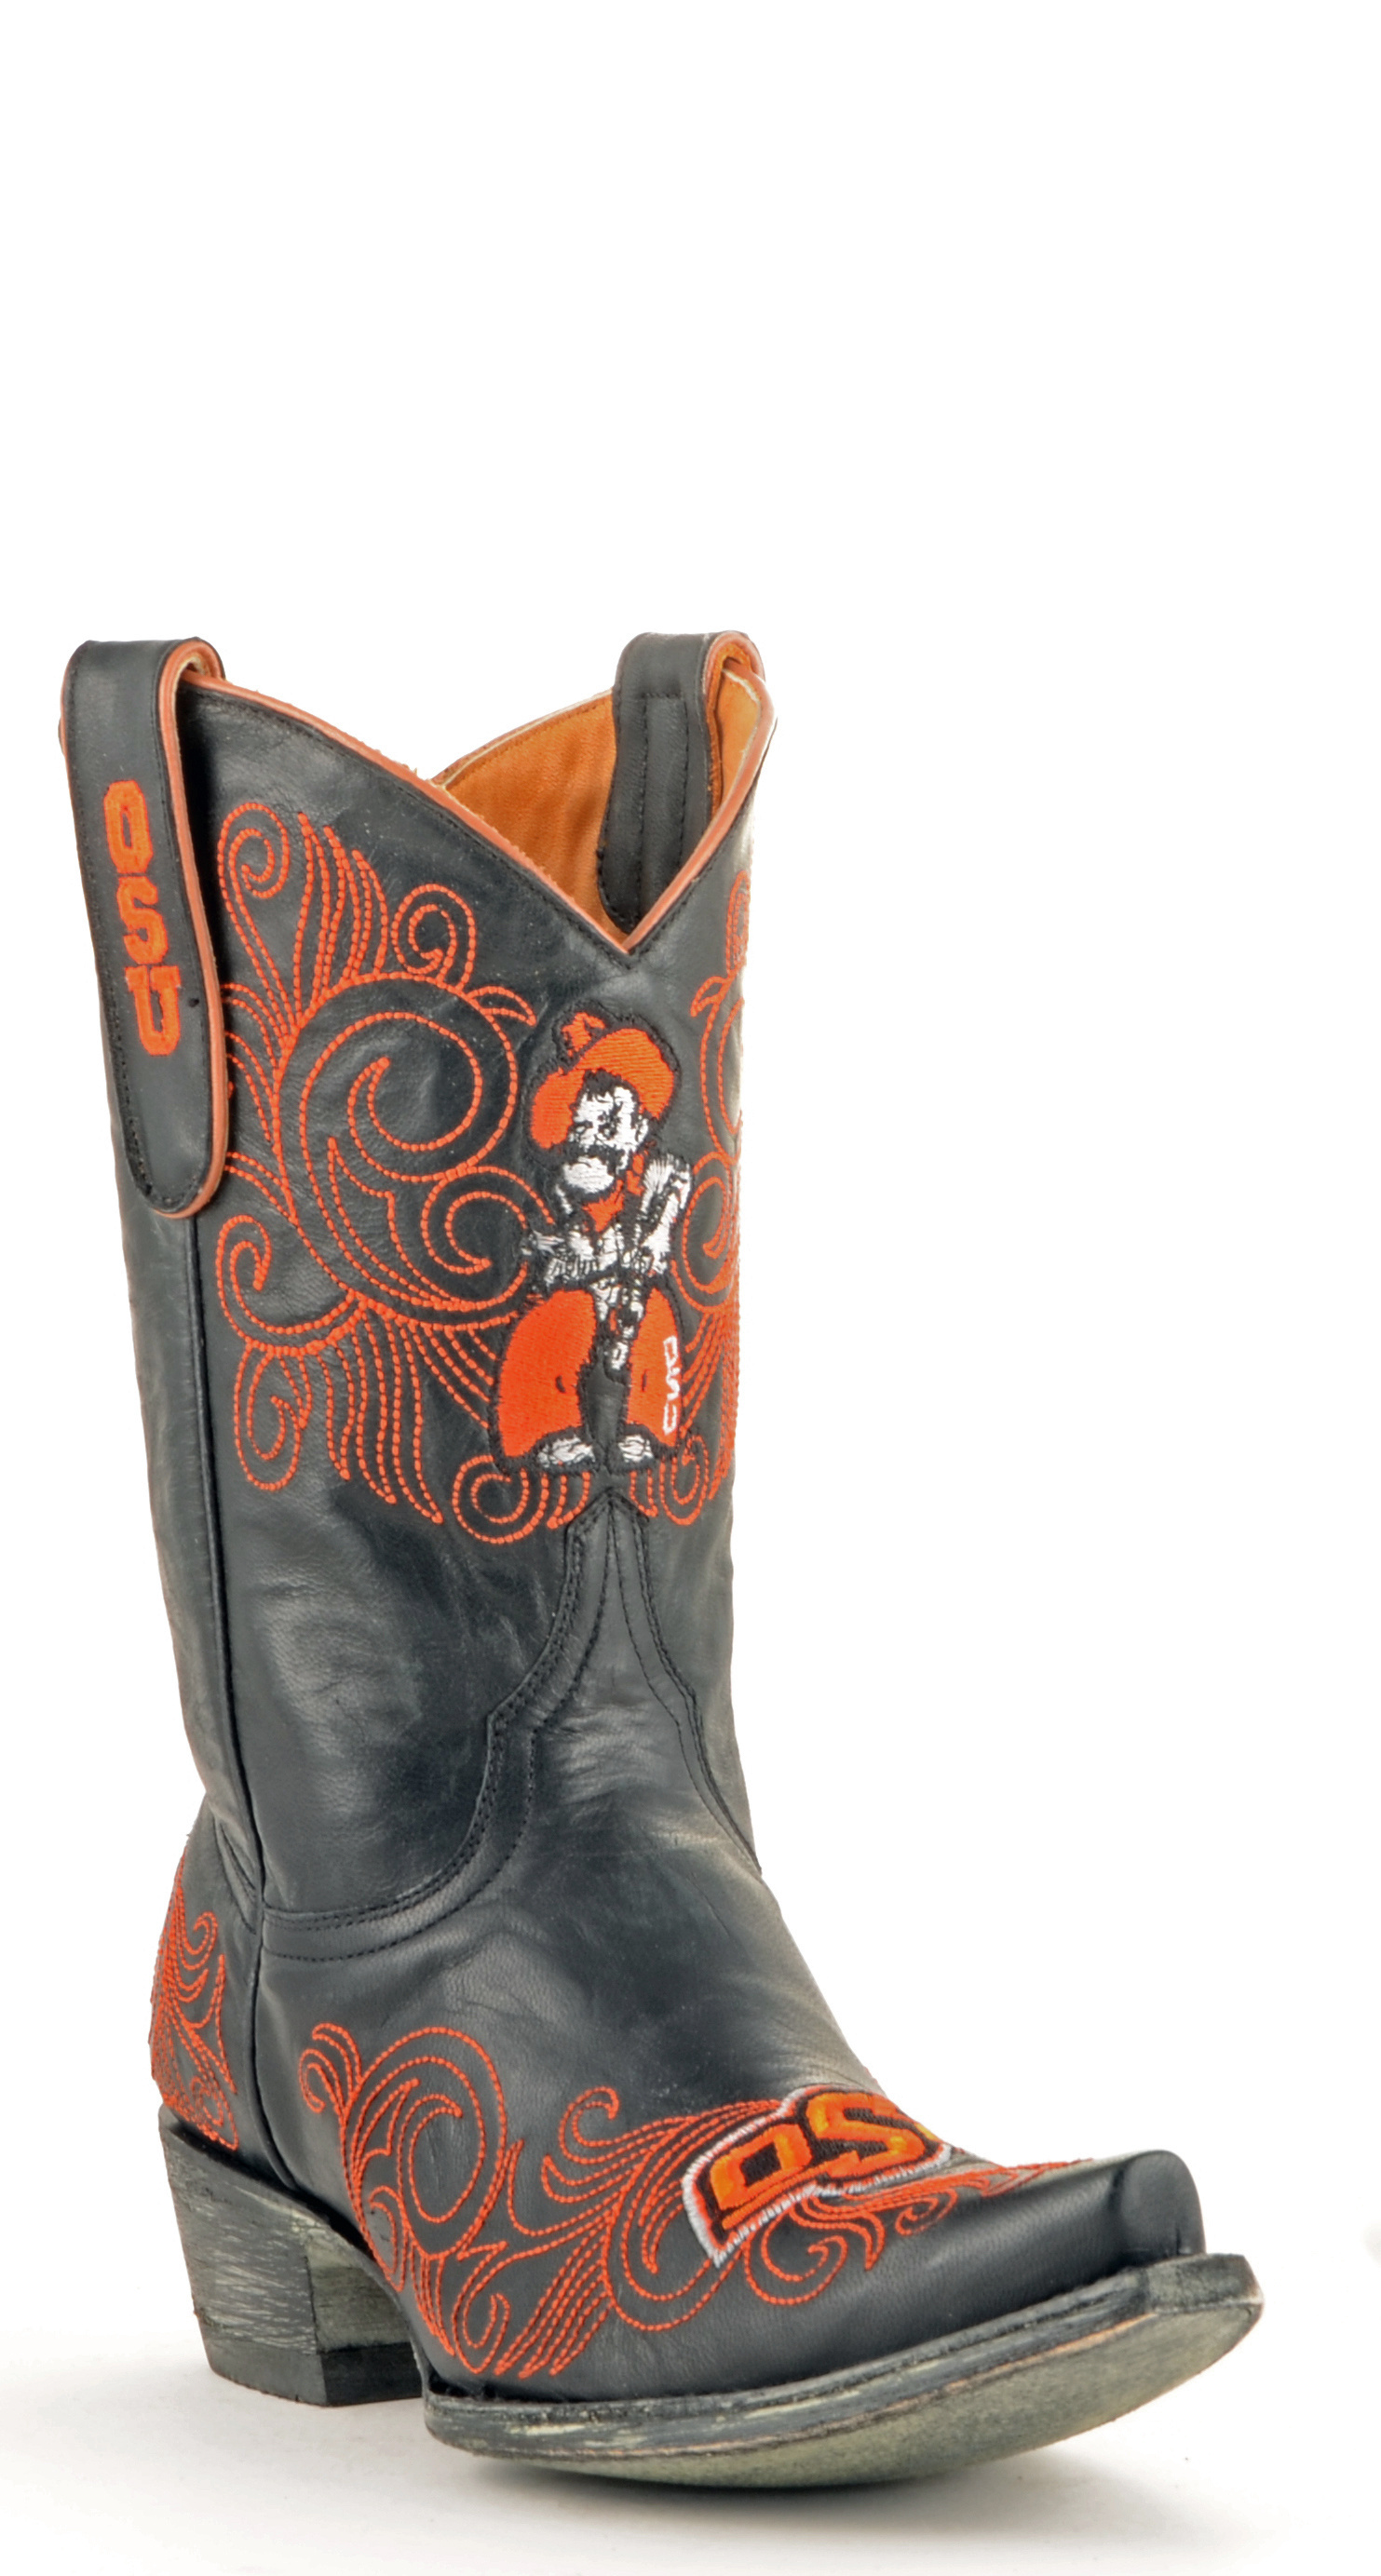 """Gameday Boots Women's 10"""" Short Black Leather Oklahoma State Cowboy Boots Size 6 by GameDay Boots"""